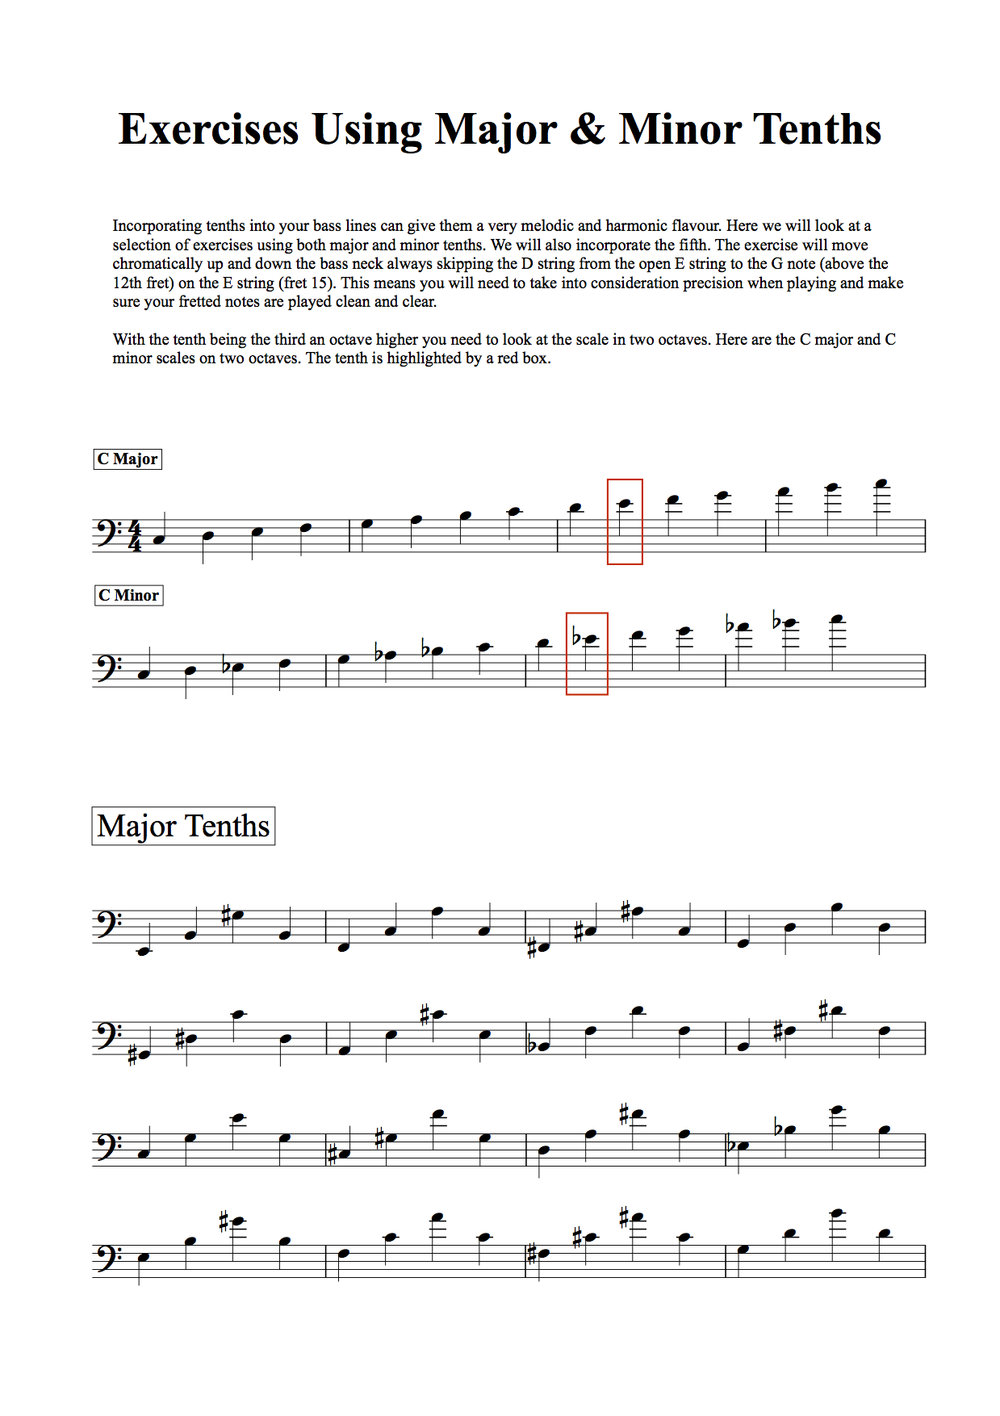 lesson 3 - Here is a short exercise using major and minor 10th's. The 10th (3rd up an octave) can be a very musical note when incorporated into your bass lines. This exercise is for you to learn how to incorporate it, Get used to the sound and play it all over the neck.